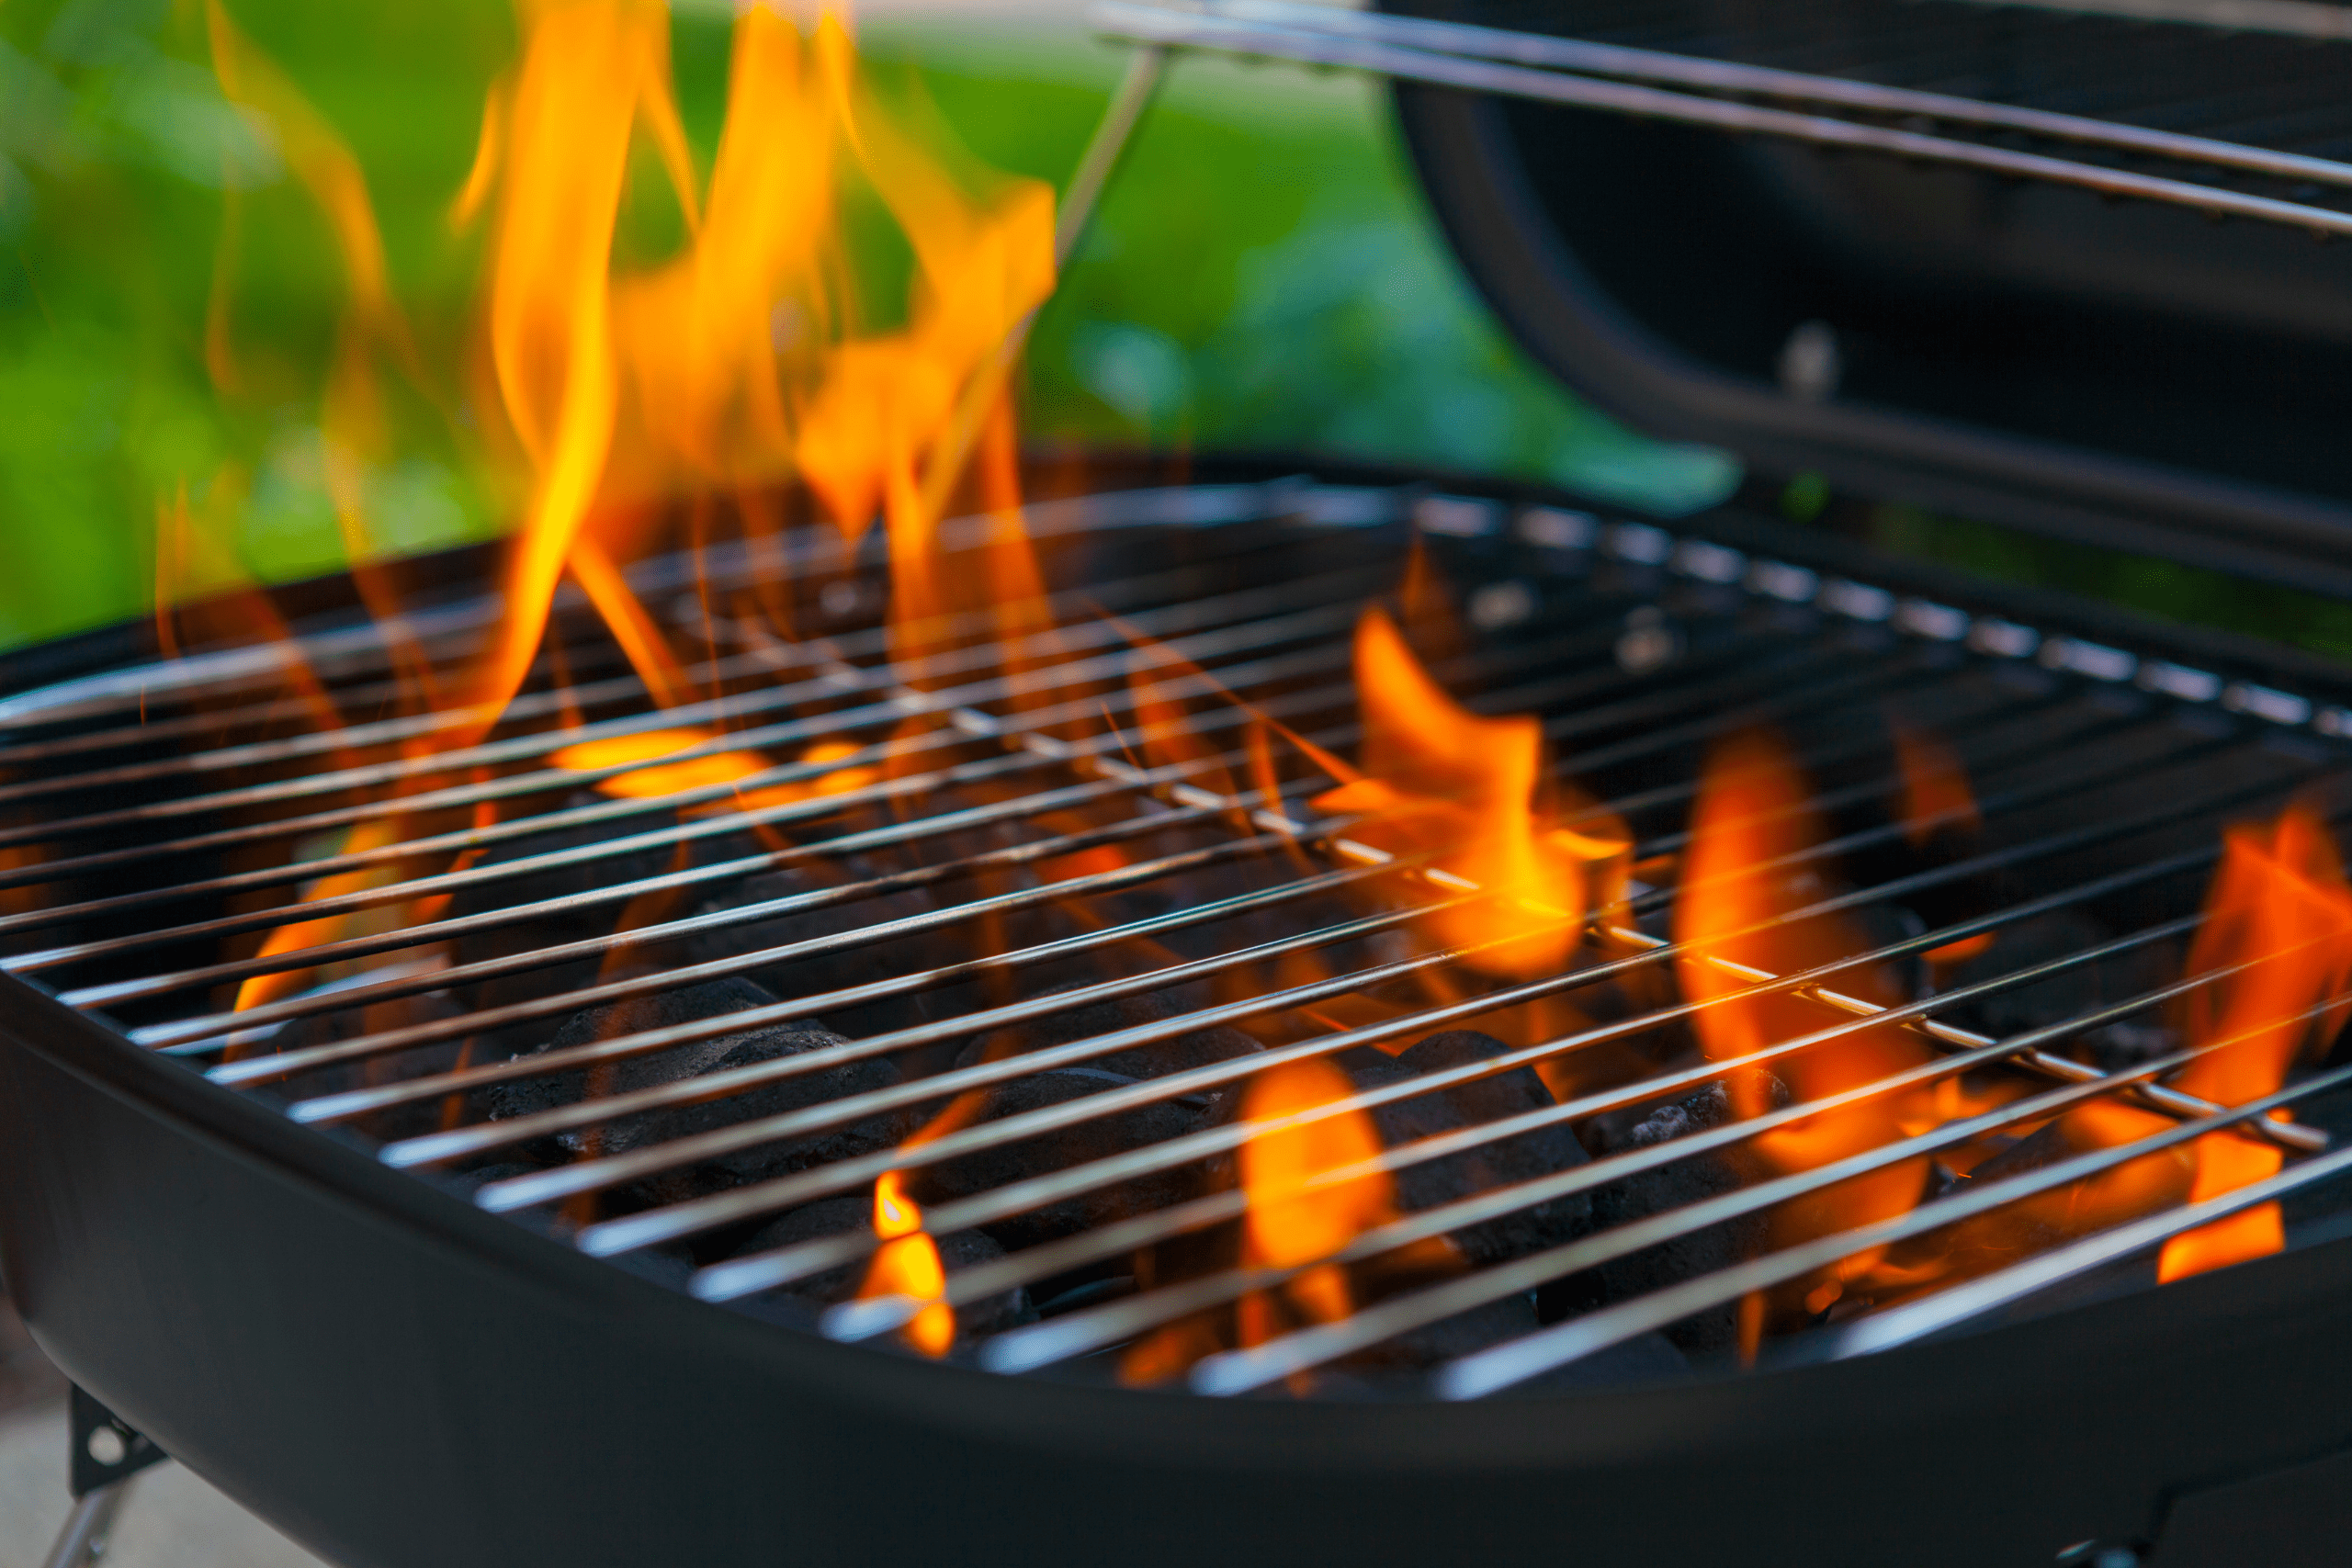 Hungry? Here are Three Great Foods to Grill Up This Holiday Weekend